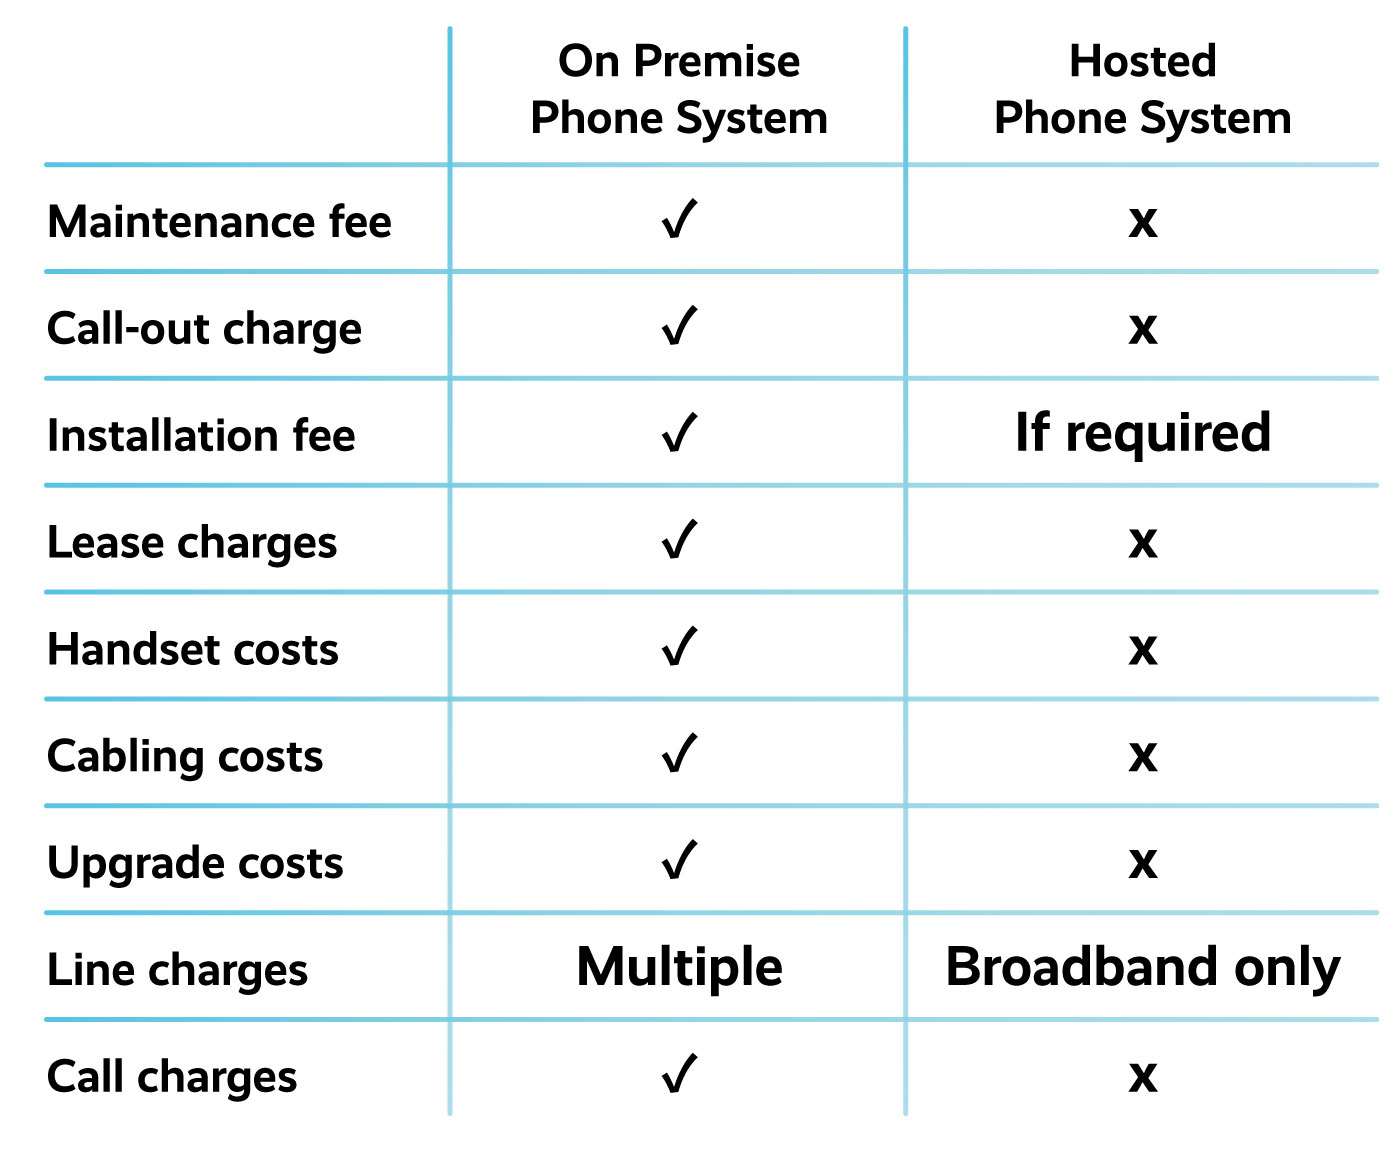 Hosted phone system comparison